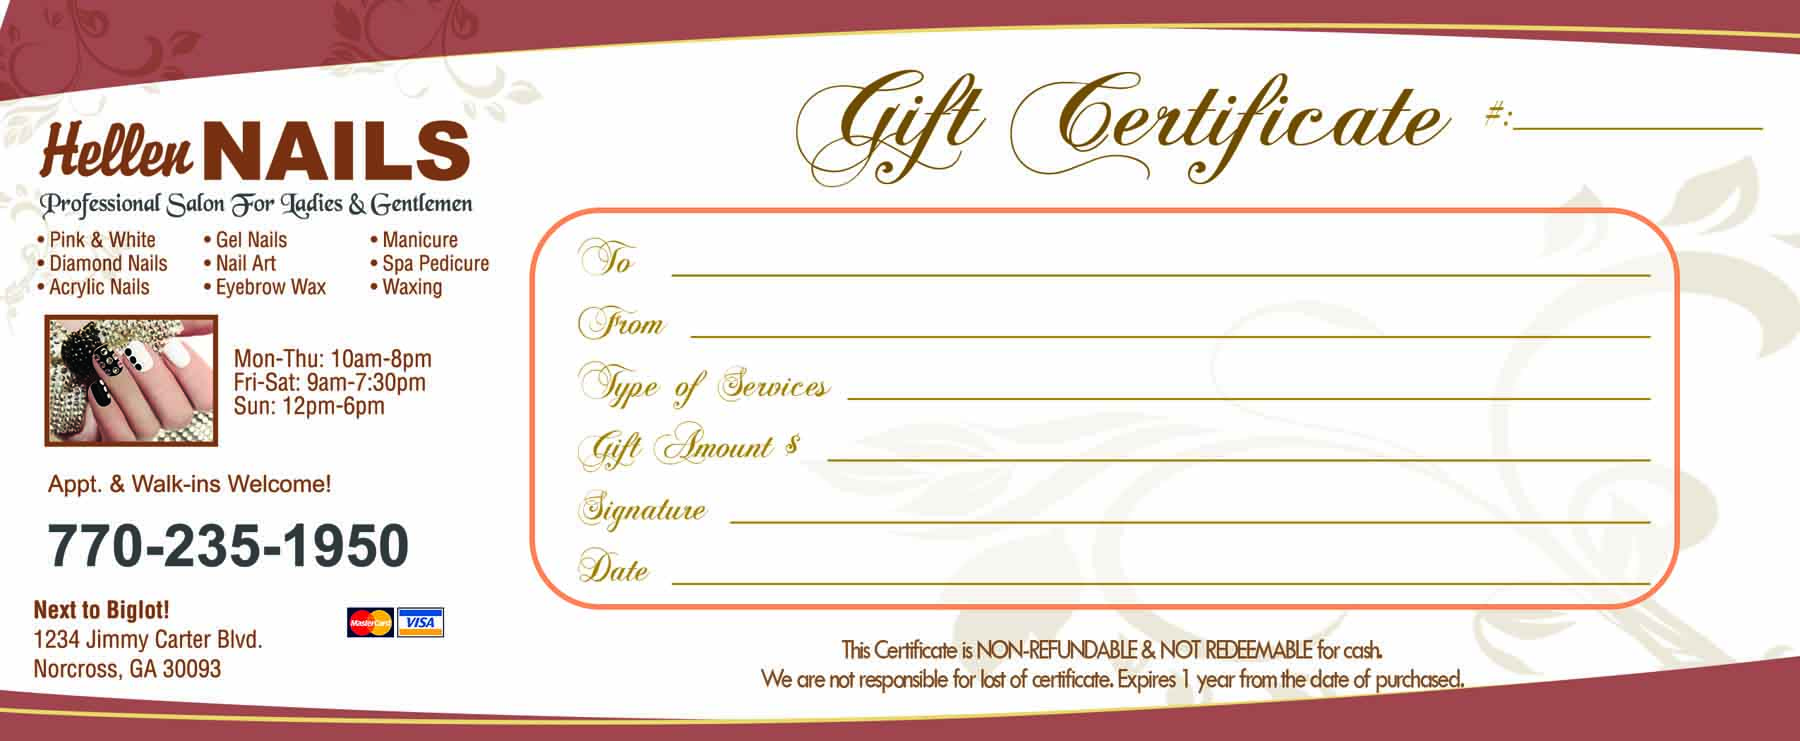 Gift certificates templates vn printing template gc21 enlage yelopaper Image collections